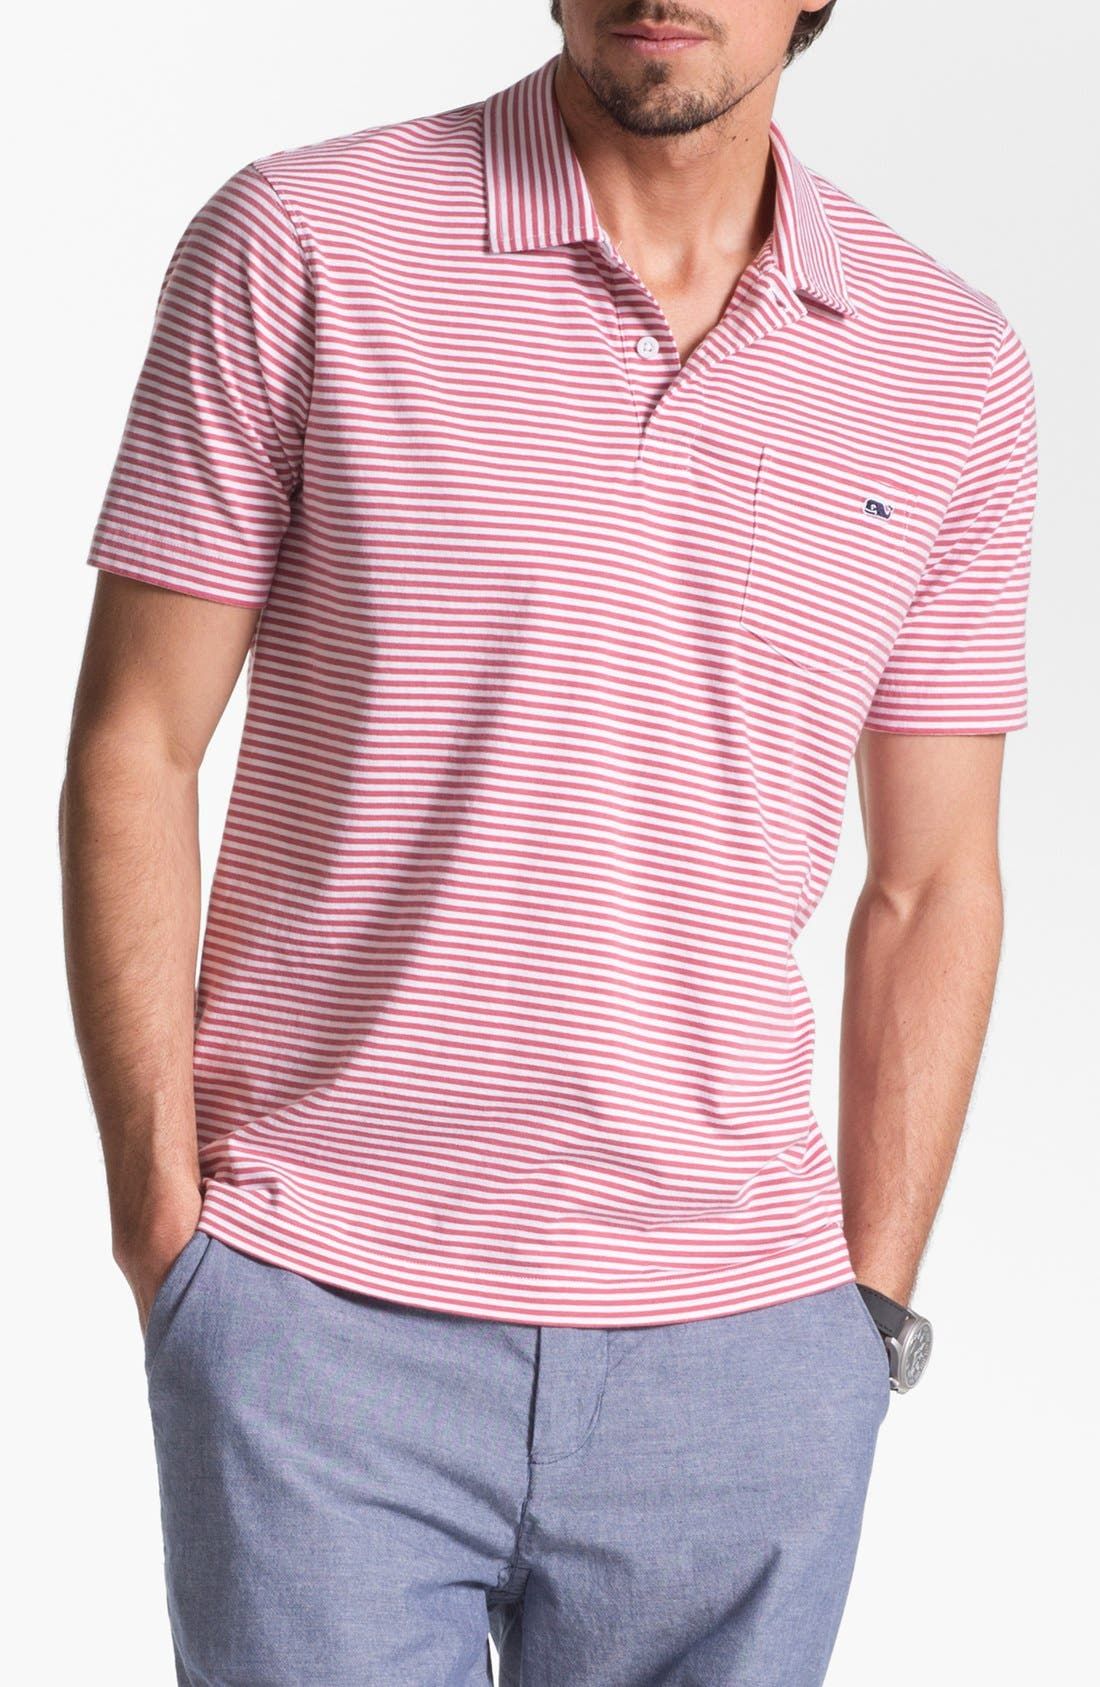 Main Image - Vineyard Vines 'Clearwater' Stripe Polo